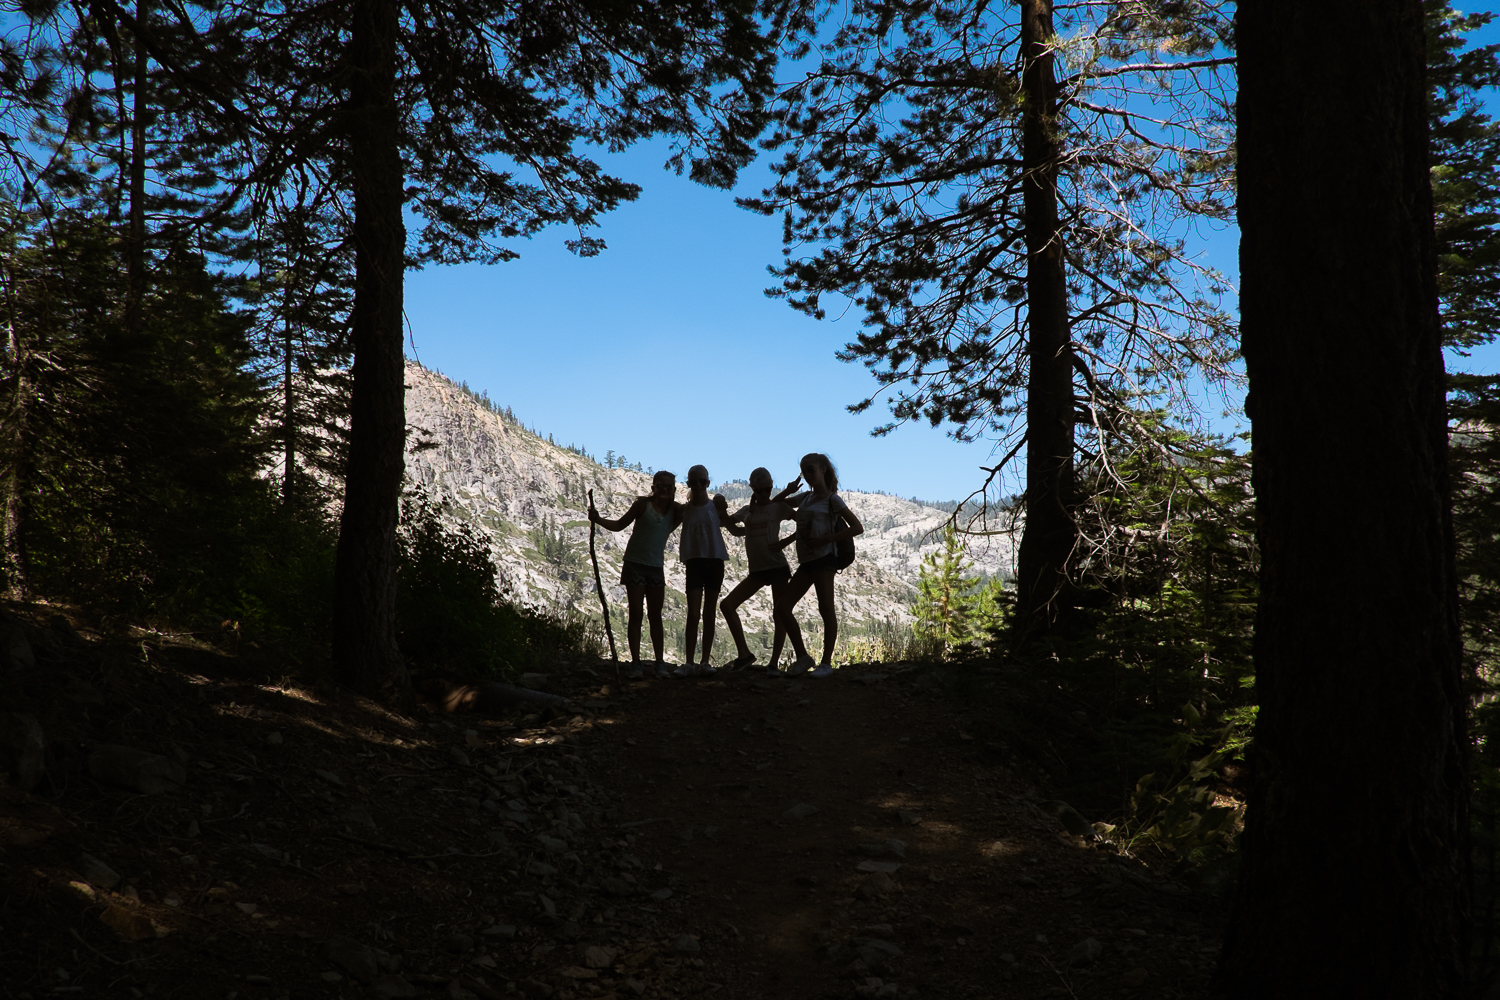 nicolaberryphotography_squaw valley silhouette_california.jpg